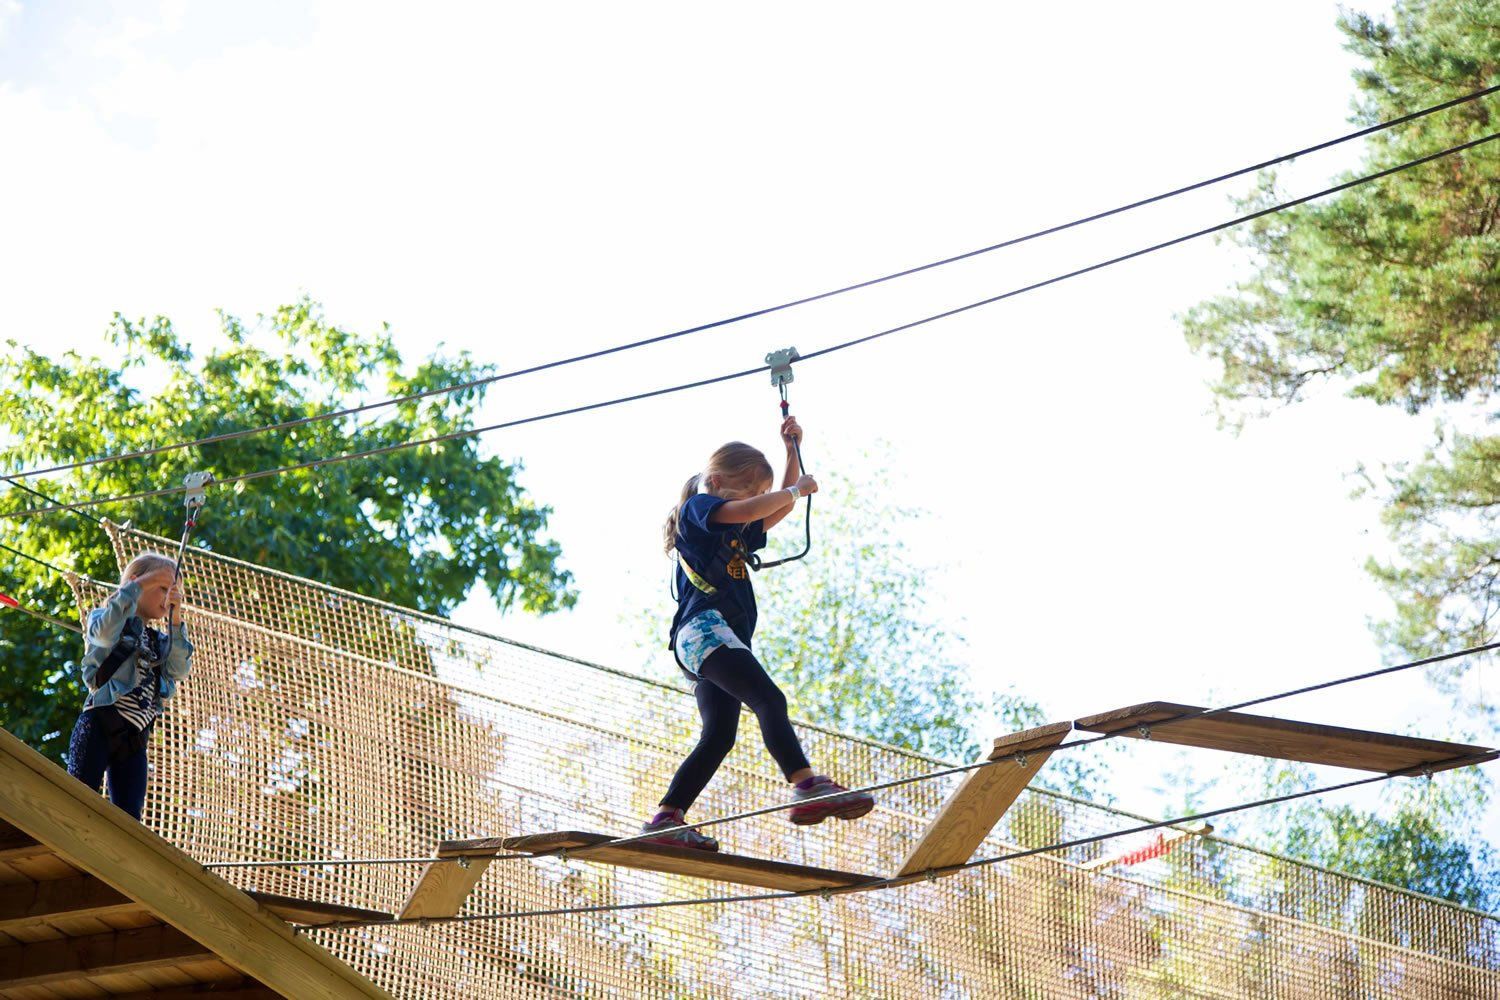 Go Ape At Dalby Forest Attraction Dalby Forest North